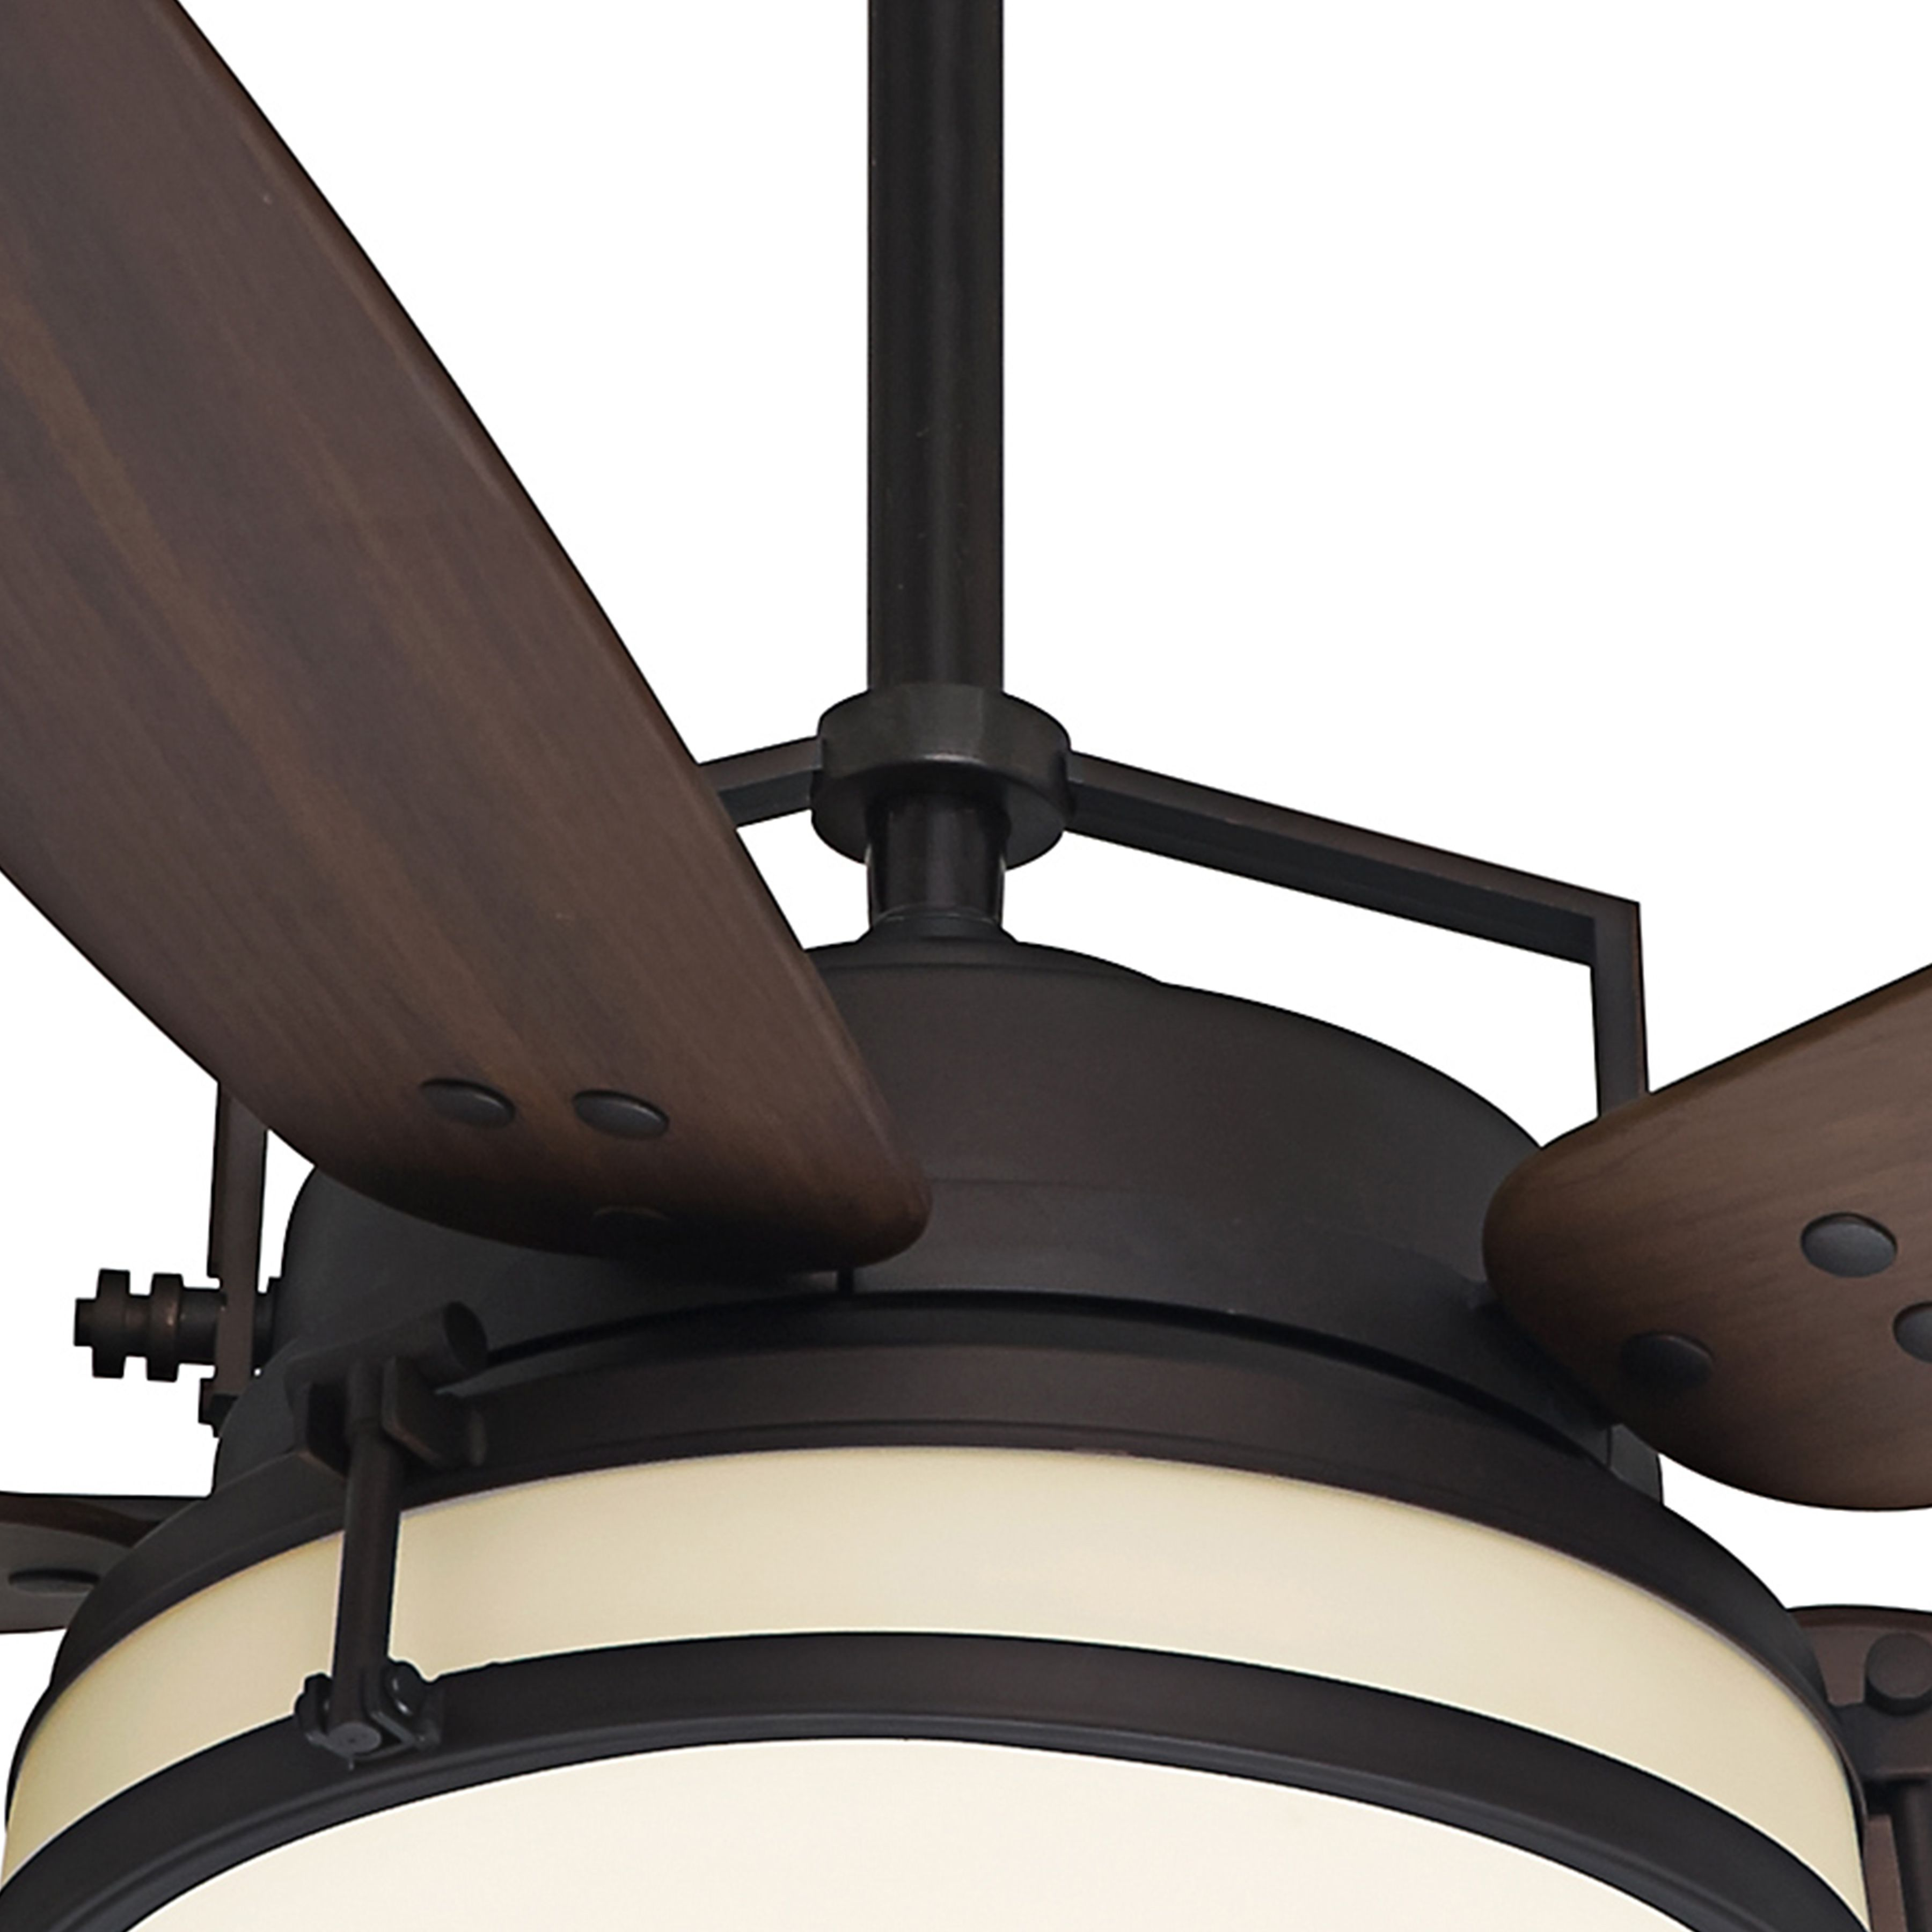 ceilings product details ceiling fan black collection inch minimalist matte